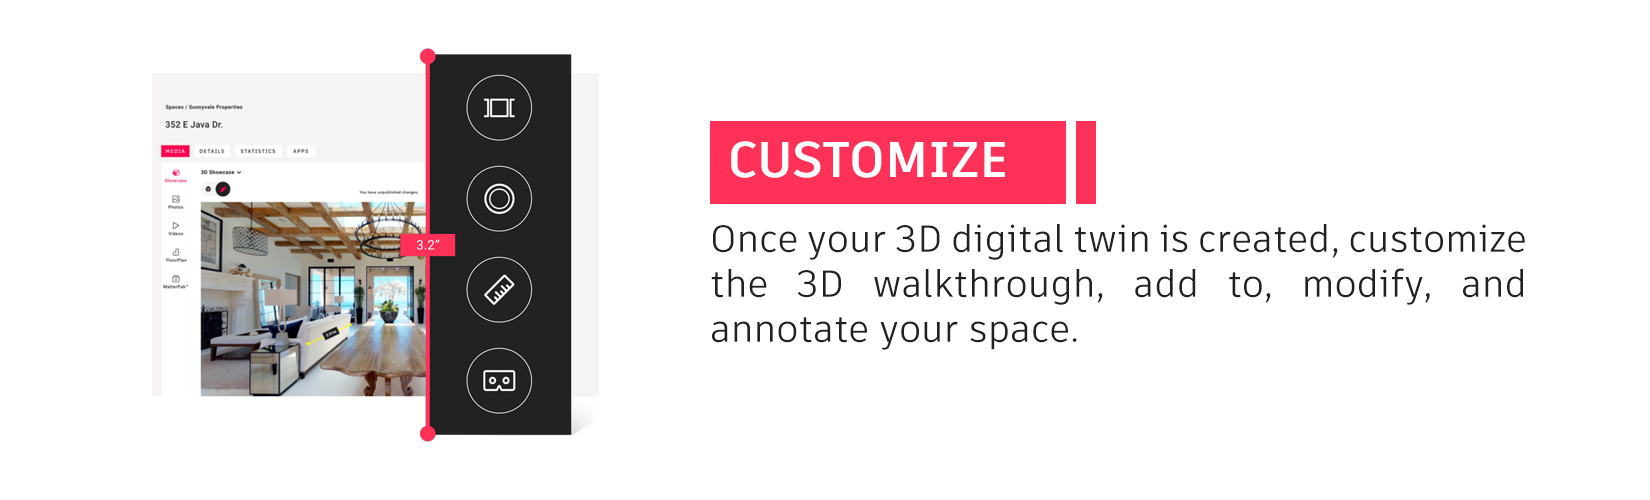 4-Matterport-Slide-Image-Customize